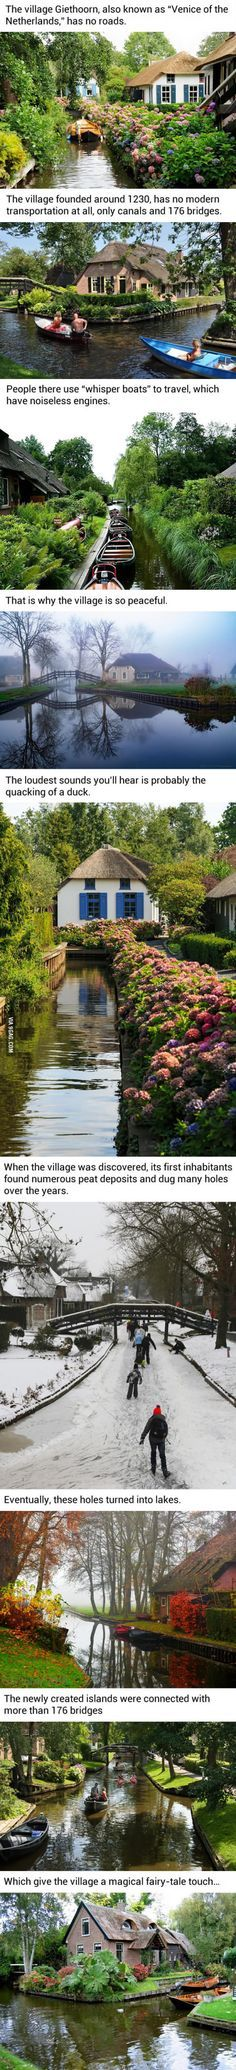 This Village Without Roads Looks Like It's From A Fairytale: Giethoorn, Netherlands